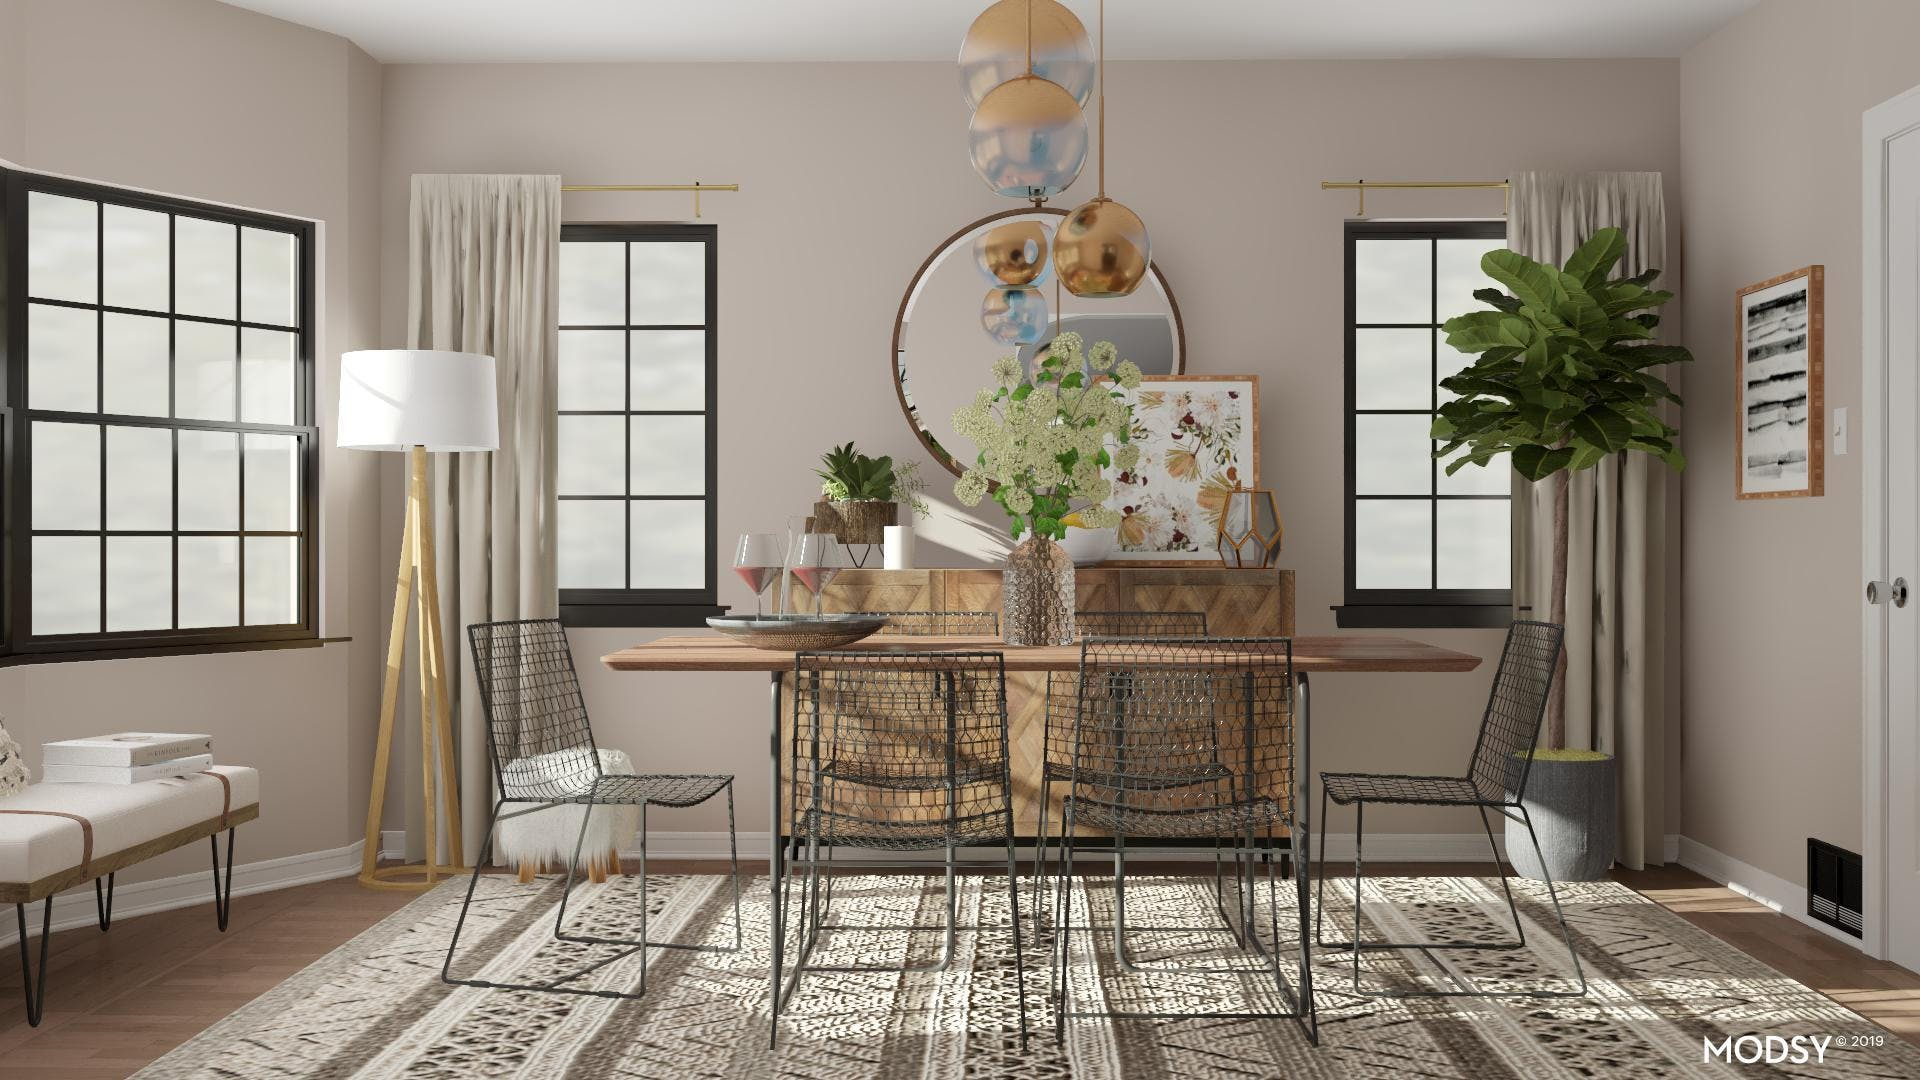 A Chic and Eclectic Dream